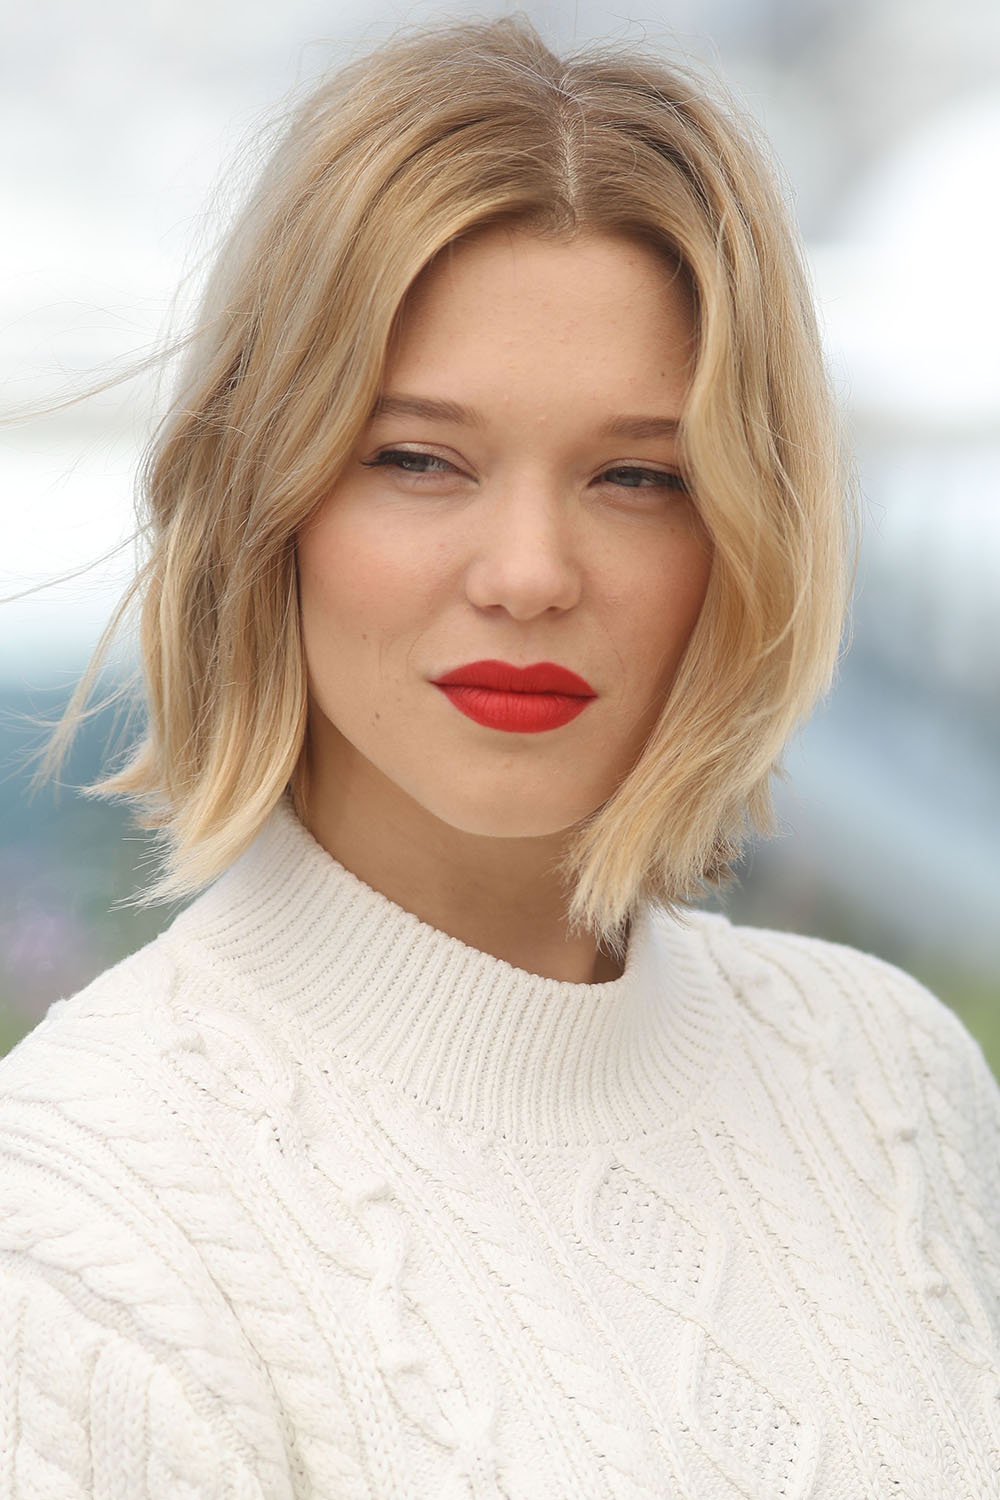 Groovy 37 Cute Bob And Lob Haircuts 2017 Best Celebrity Long Bob Hairstyles Short Hairstyles For Black Women Fulllsitofus